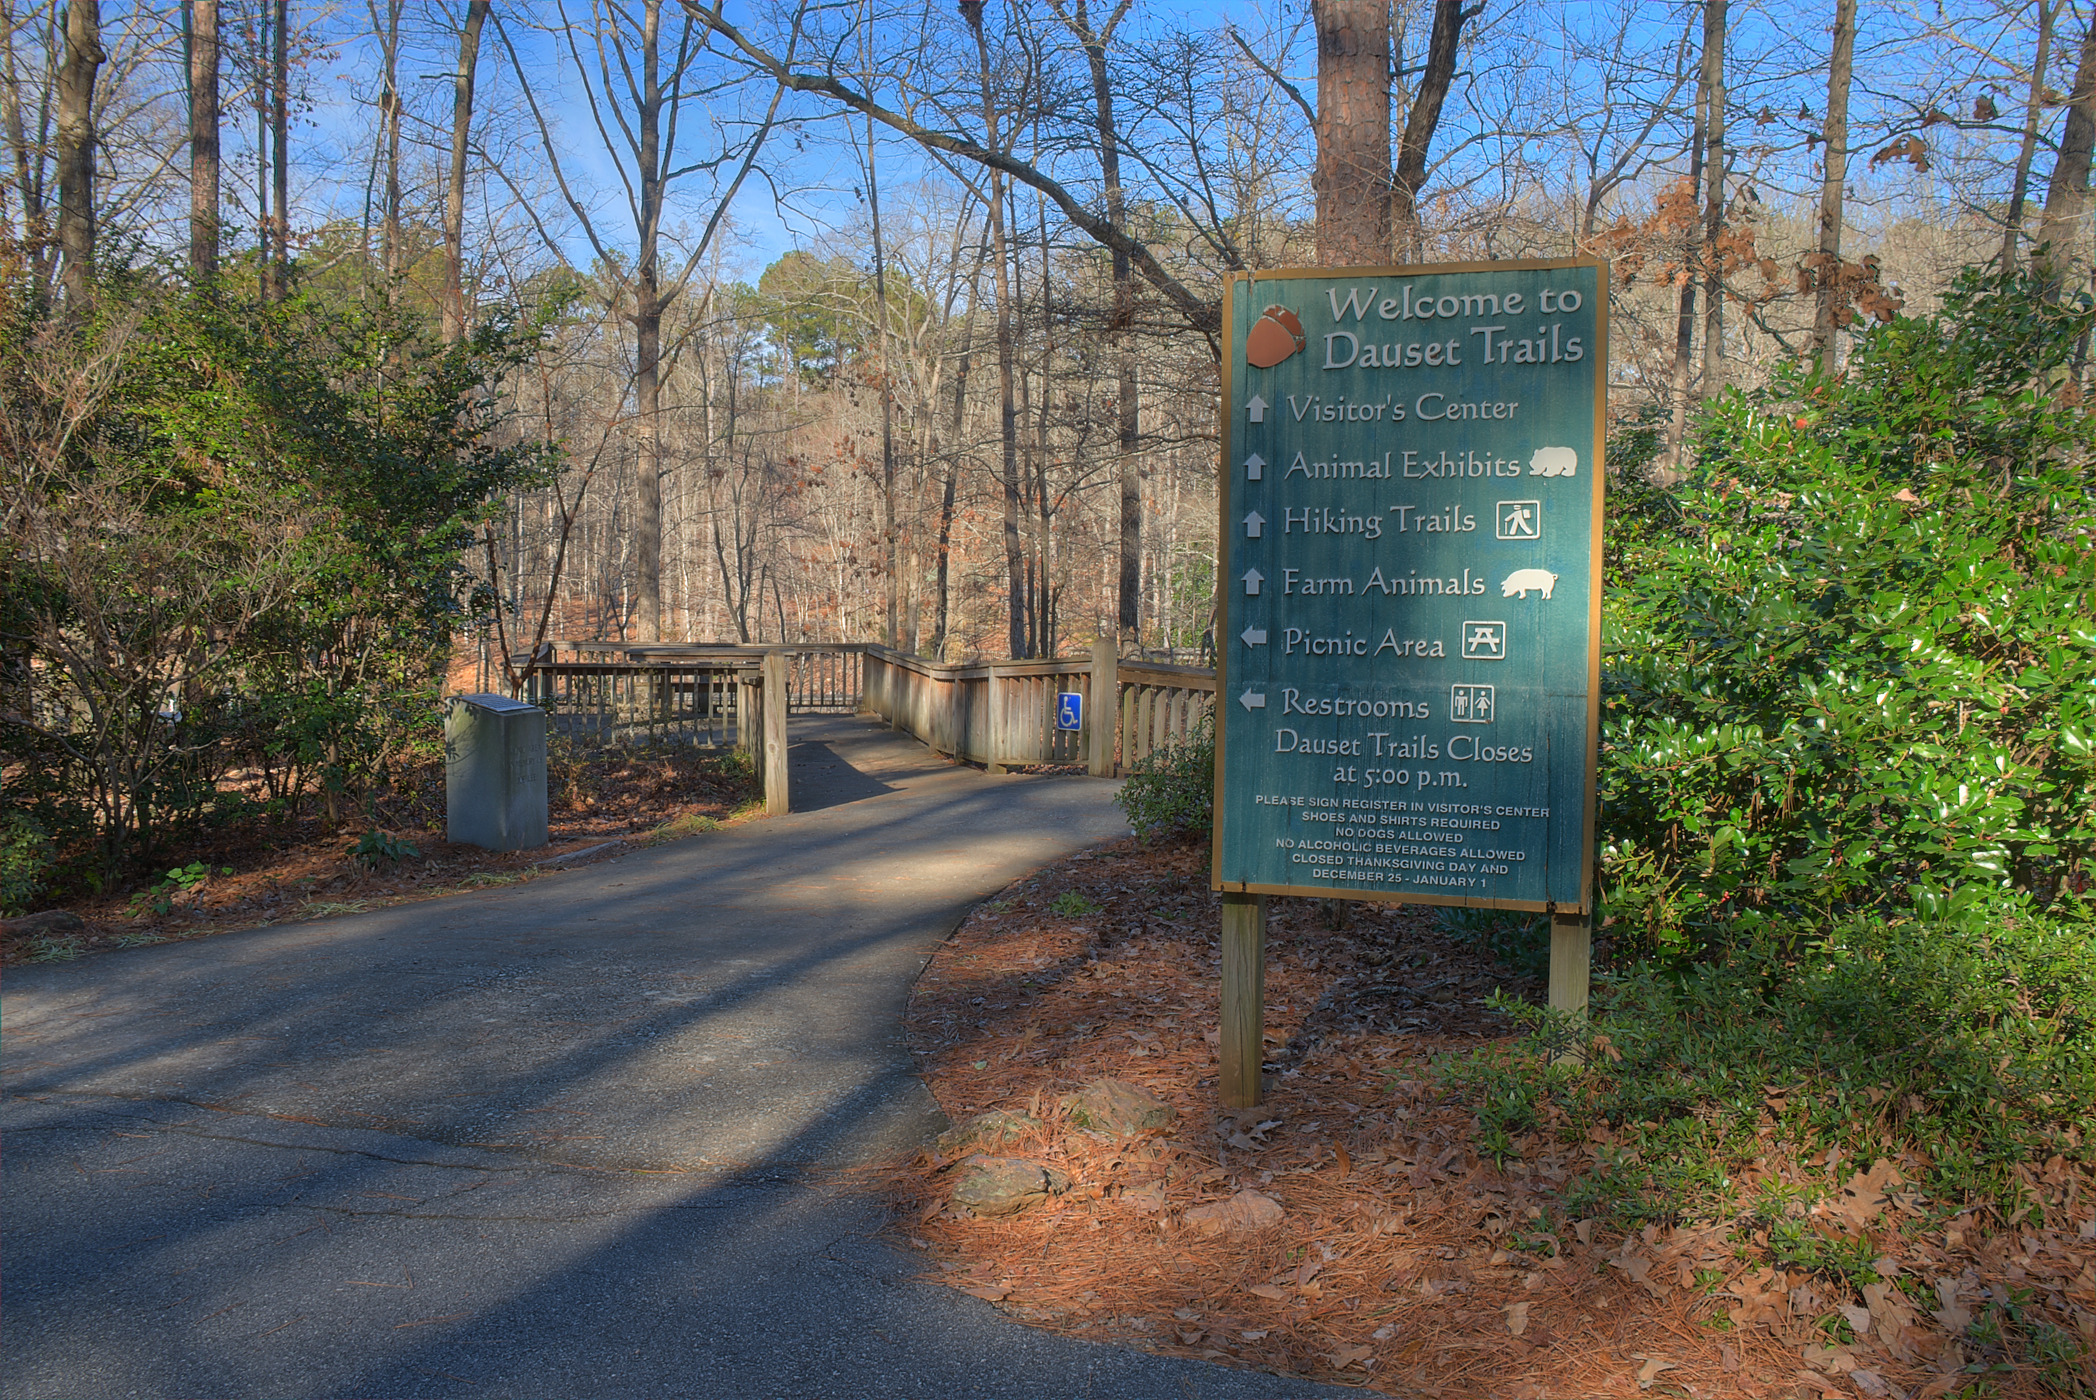 Dauset Trails Nature Center - Wikipedia on